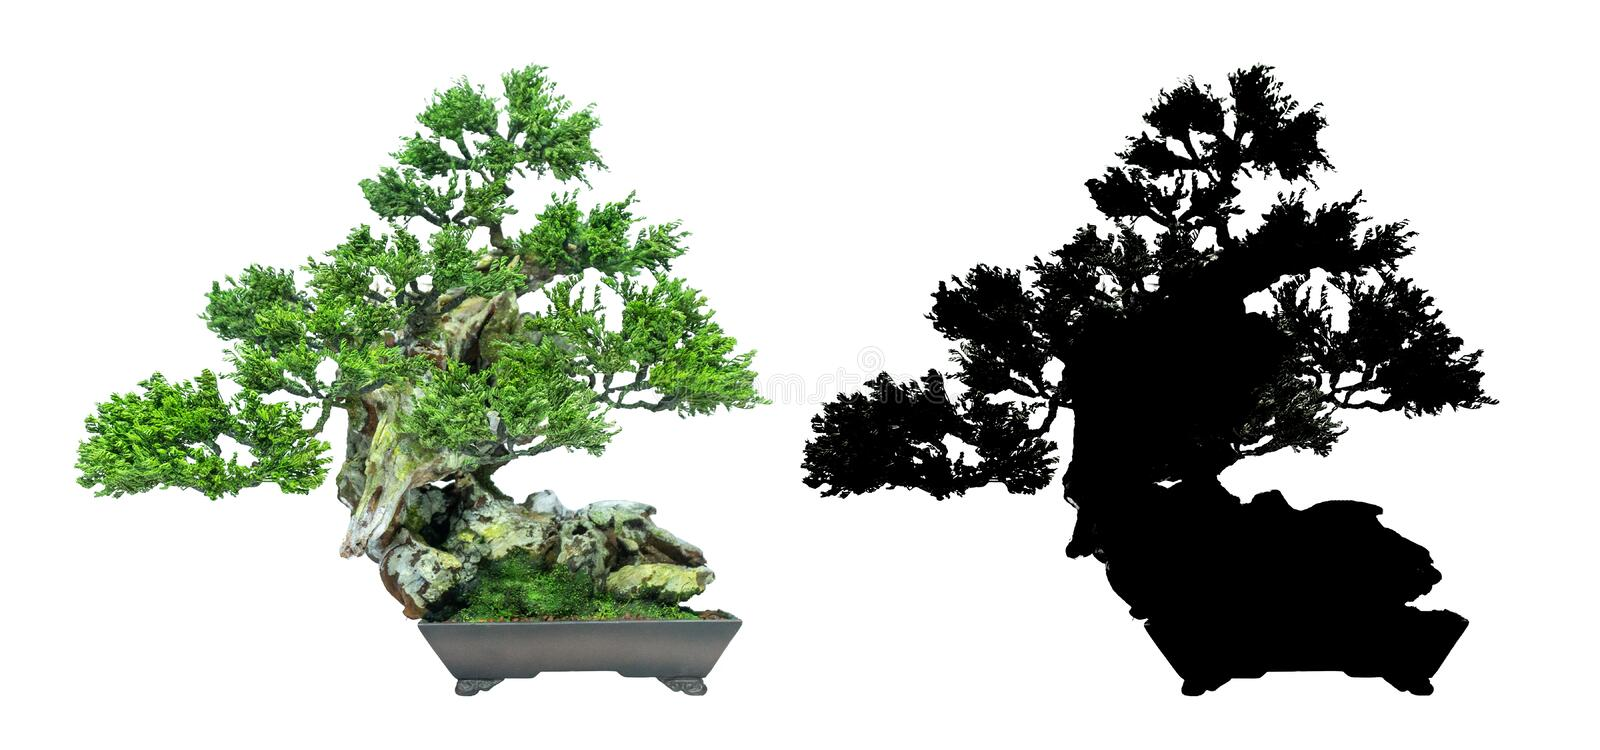 Bonsai trees, on a white background and black silhouette of bonsai. Japanese bonsai trees, on a white background and black silhouette of bonsai. used as a logo vector illustration